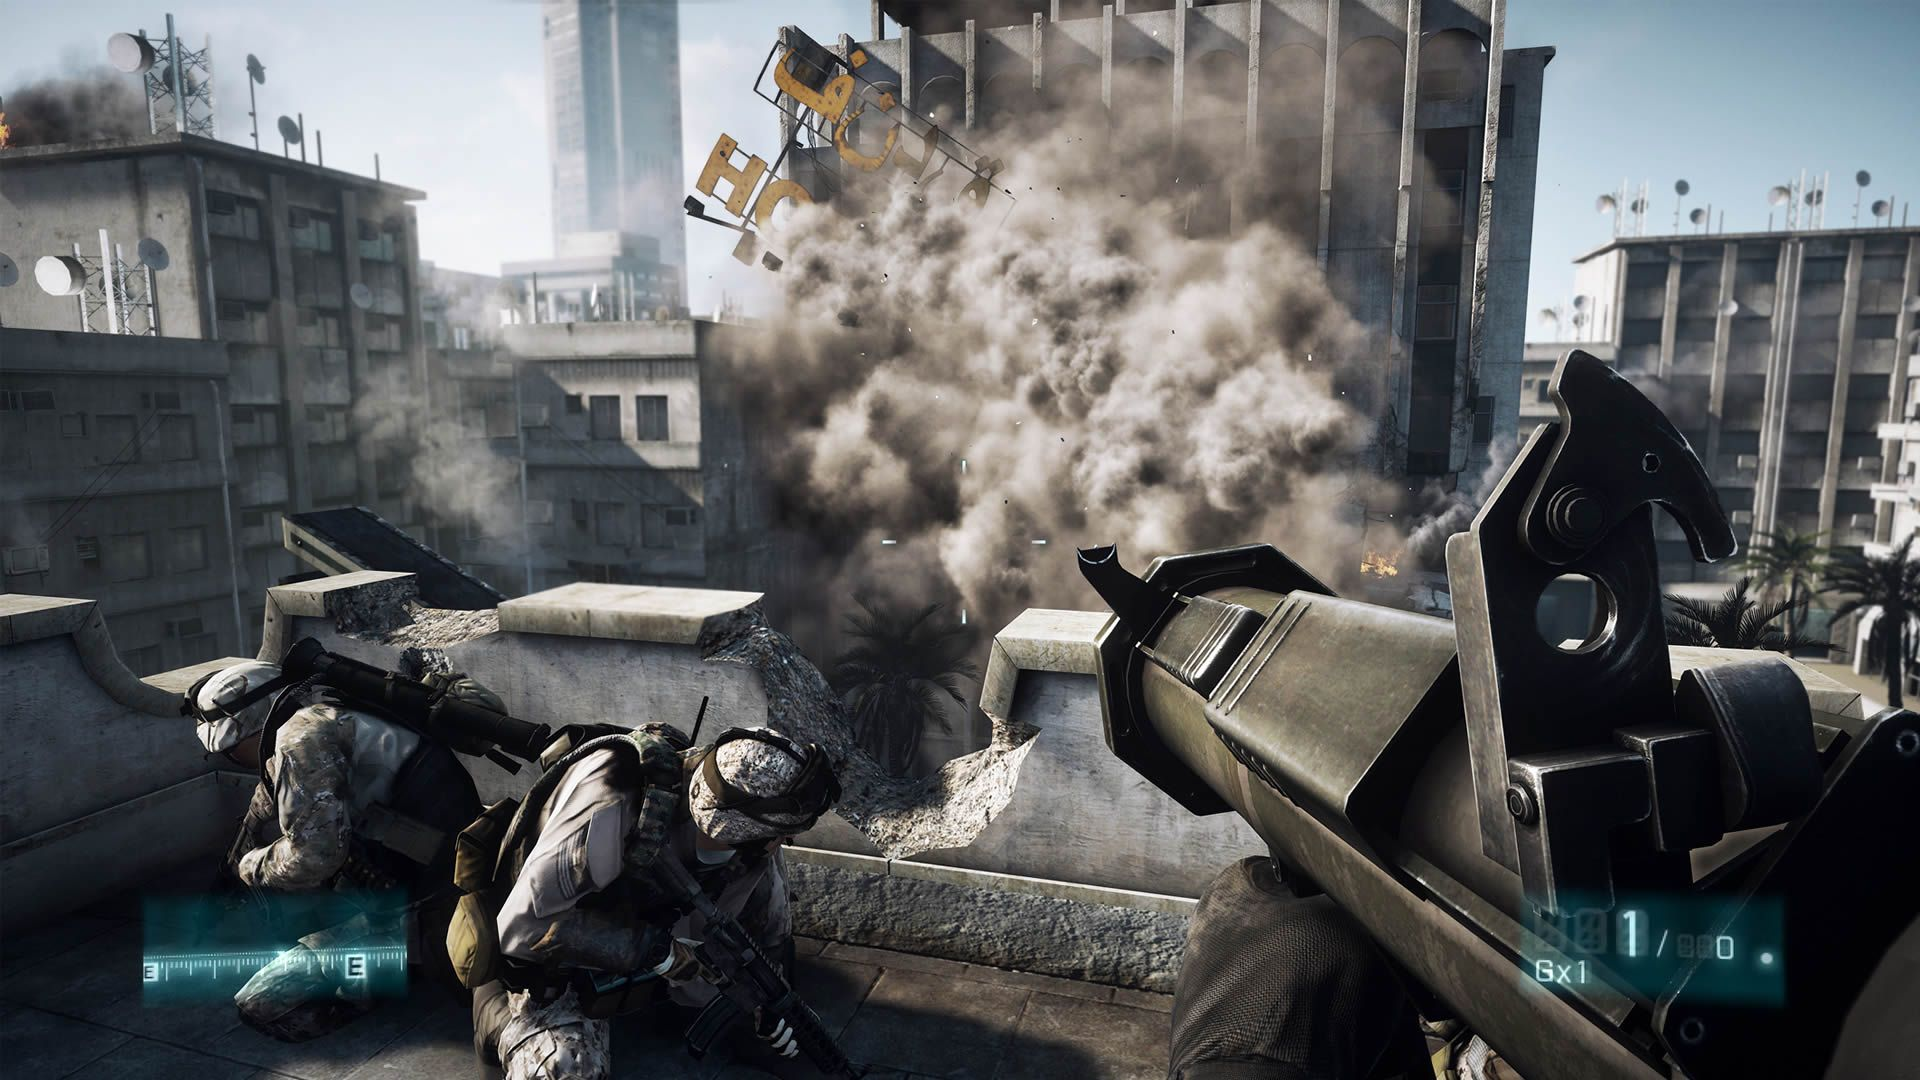 Last But Not Least The Gameplay For The Playstation4 The Gameplay